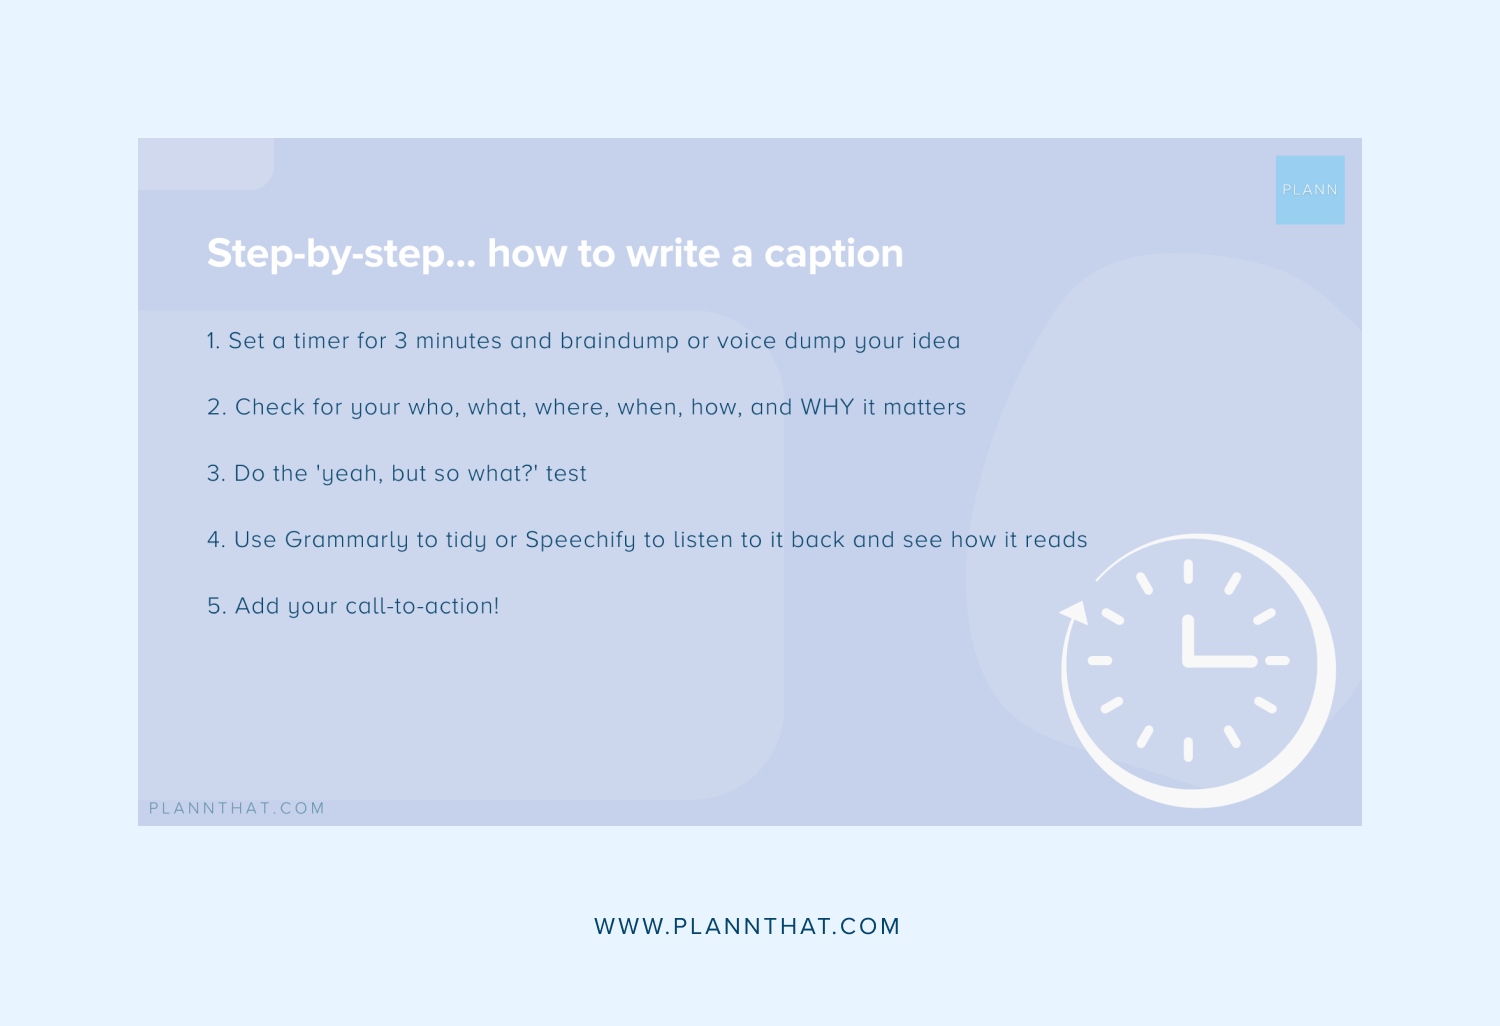 Guide to writing captions